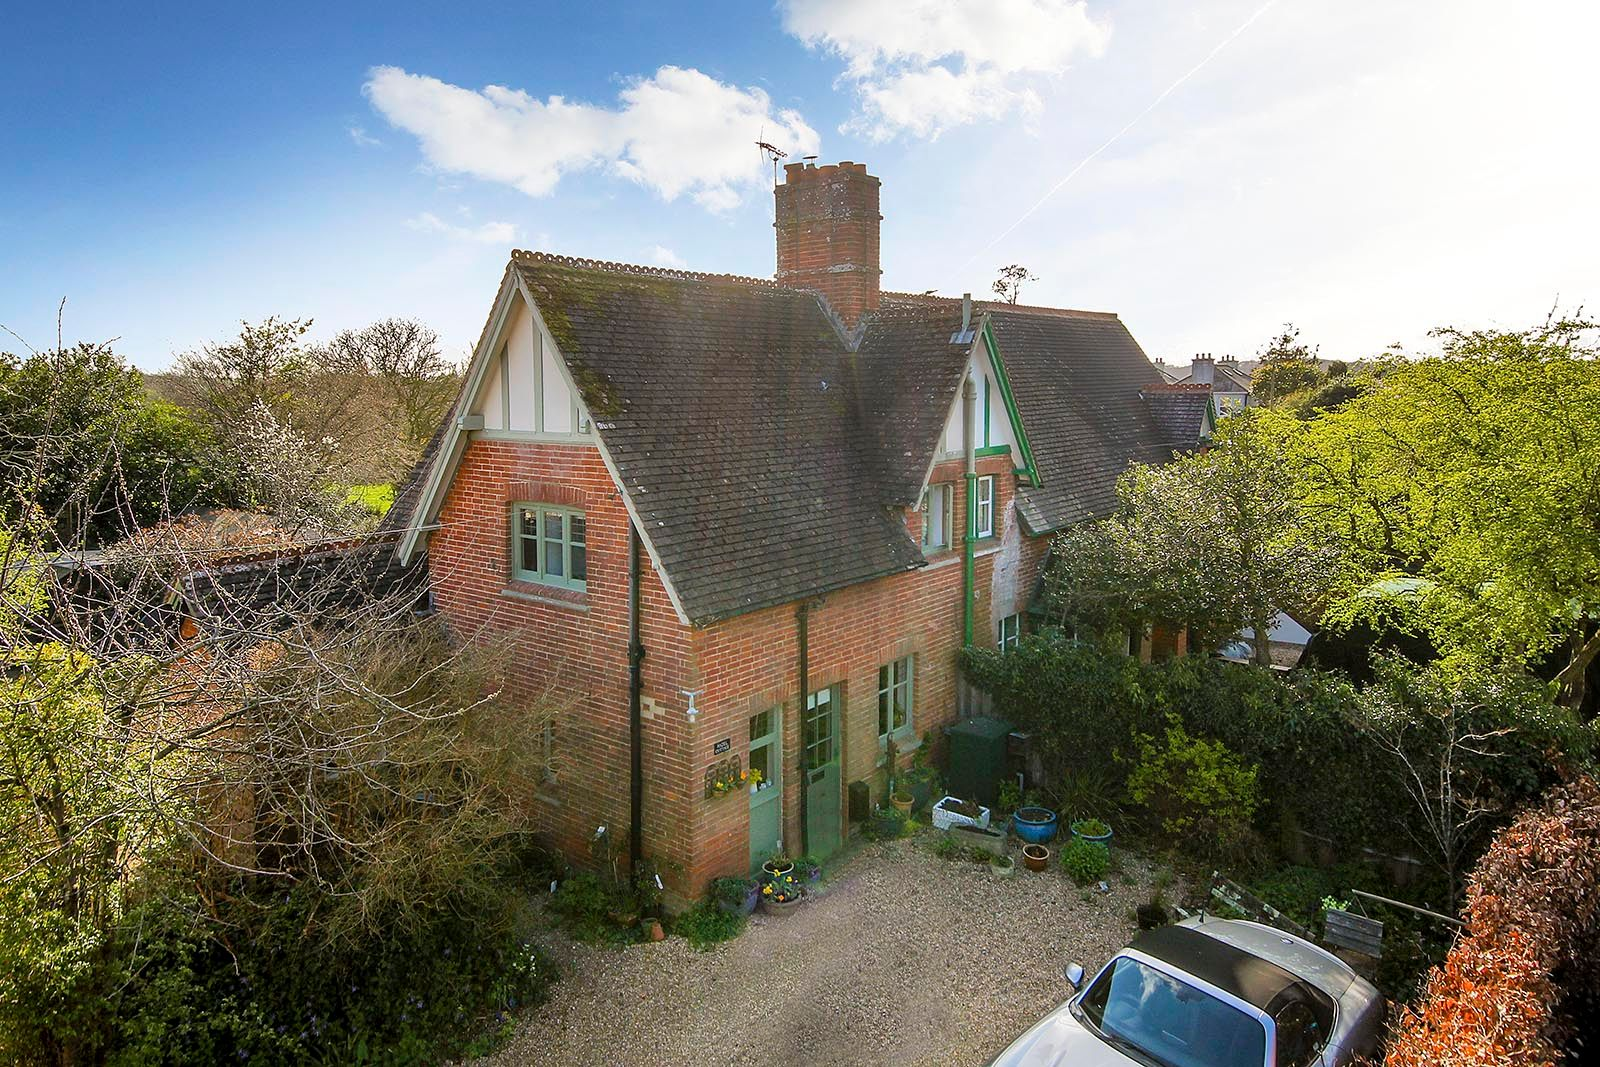 2 bed house for sale in The Street (COMP JULY 19) 1